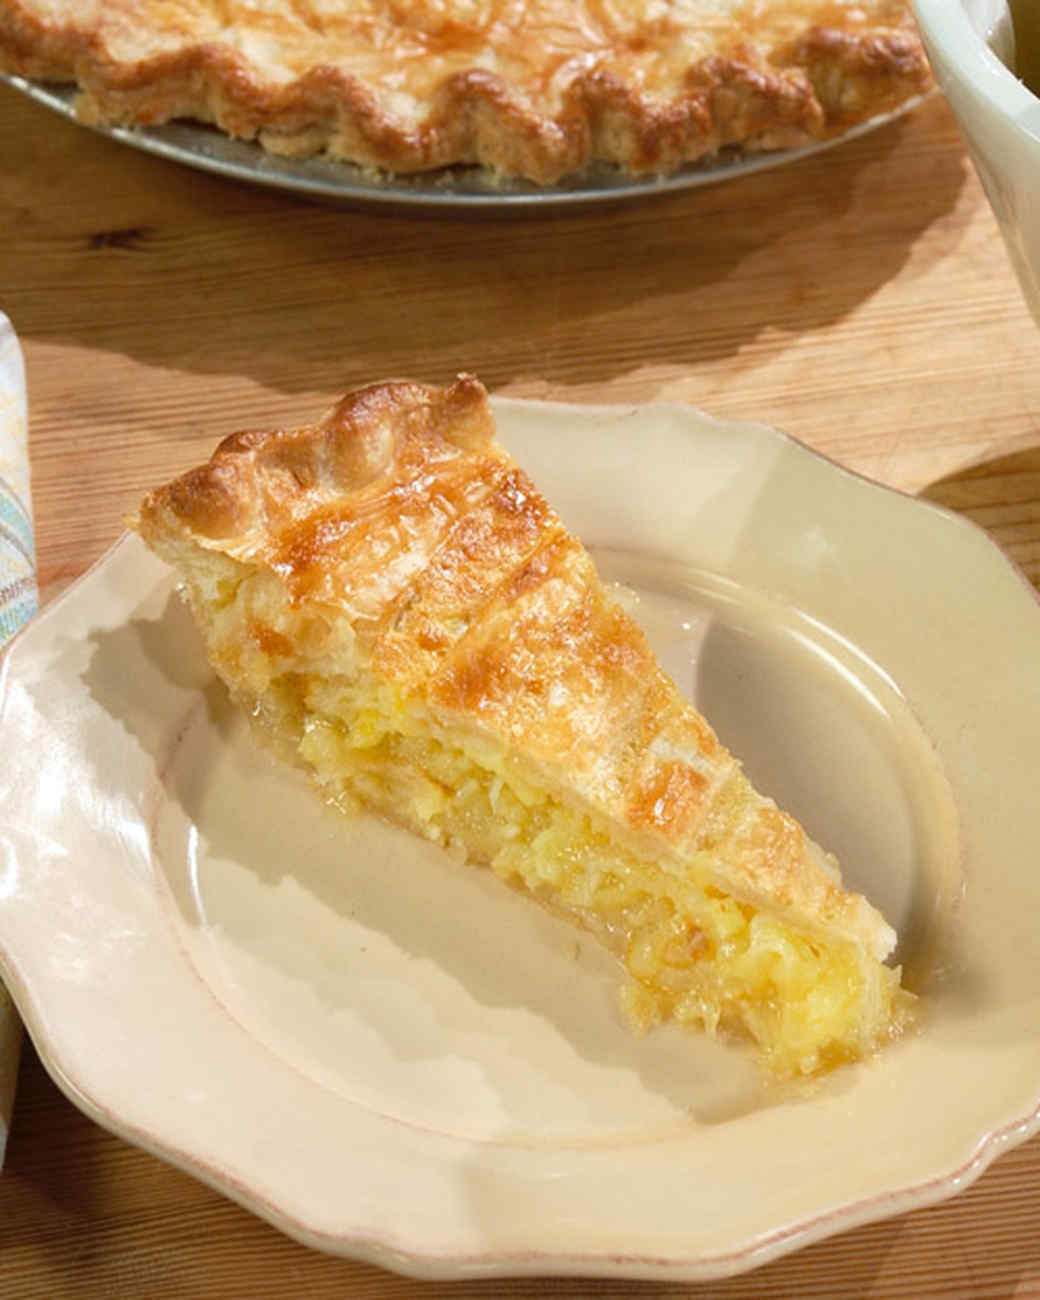 Shaker Lemon Pie